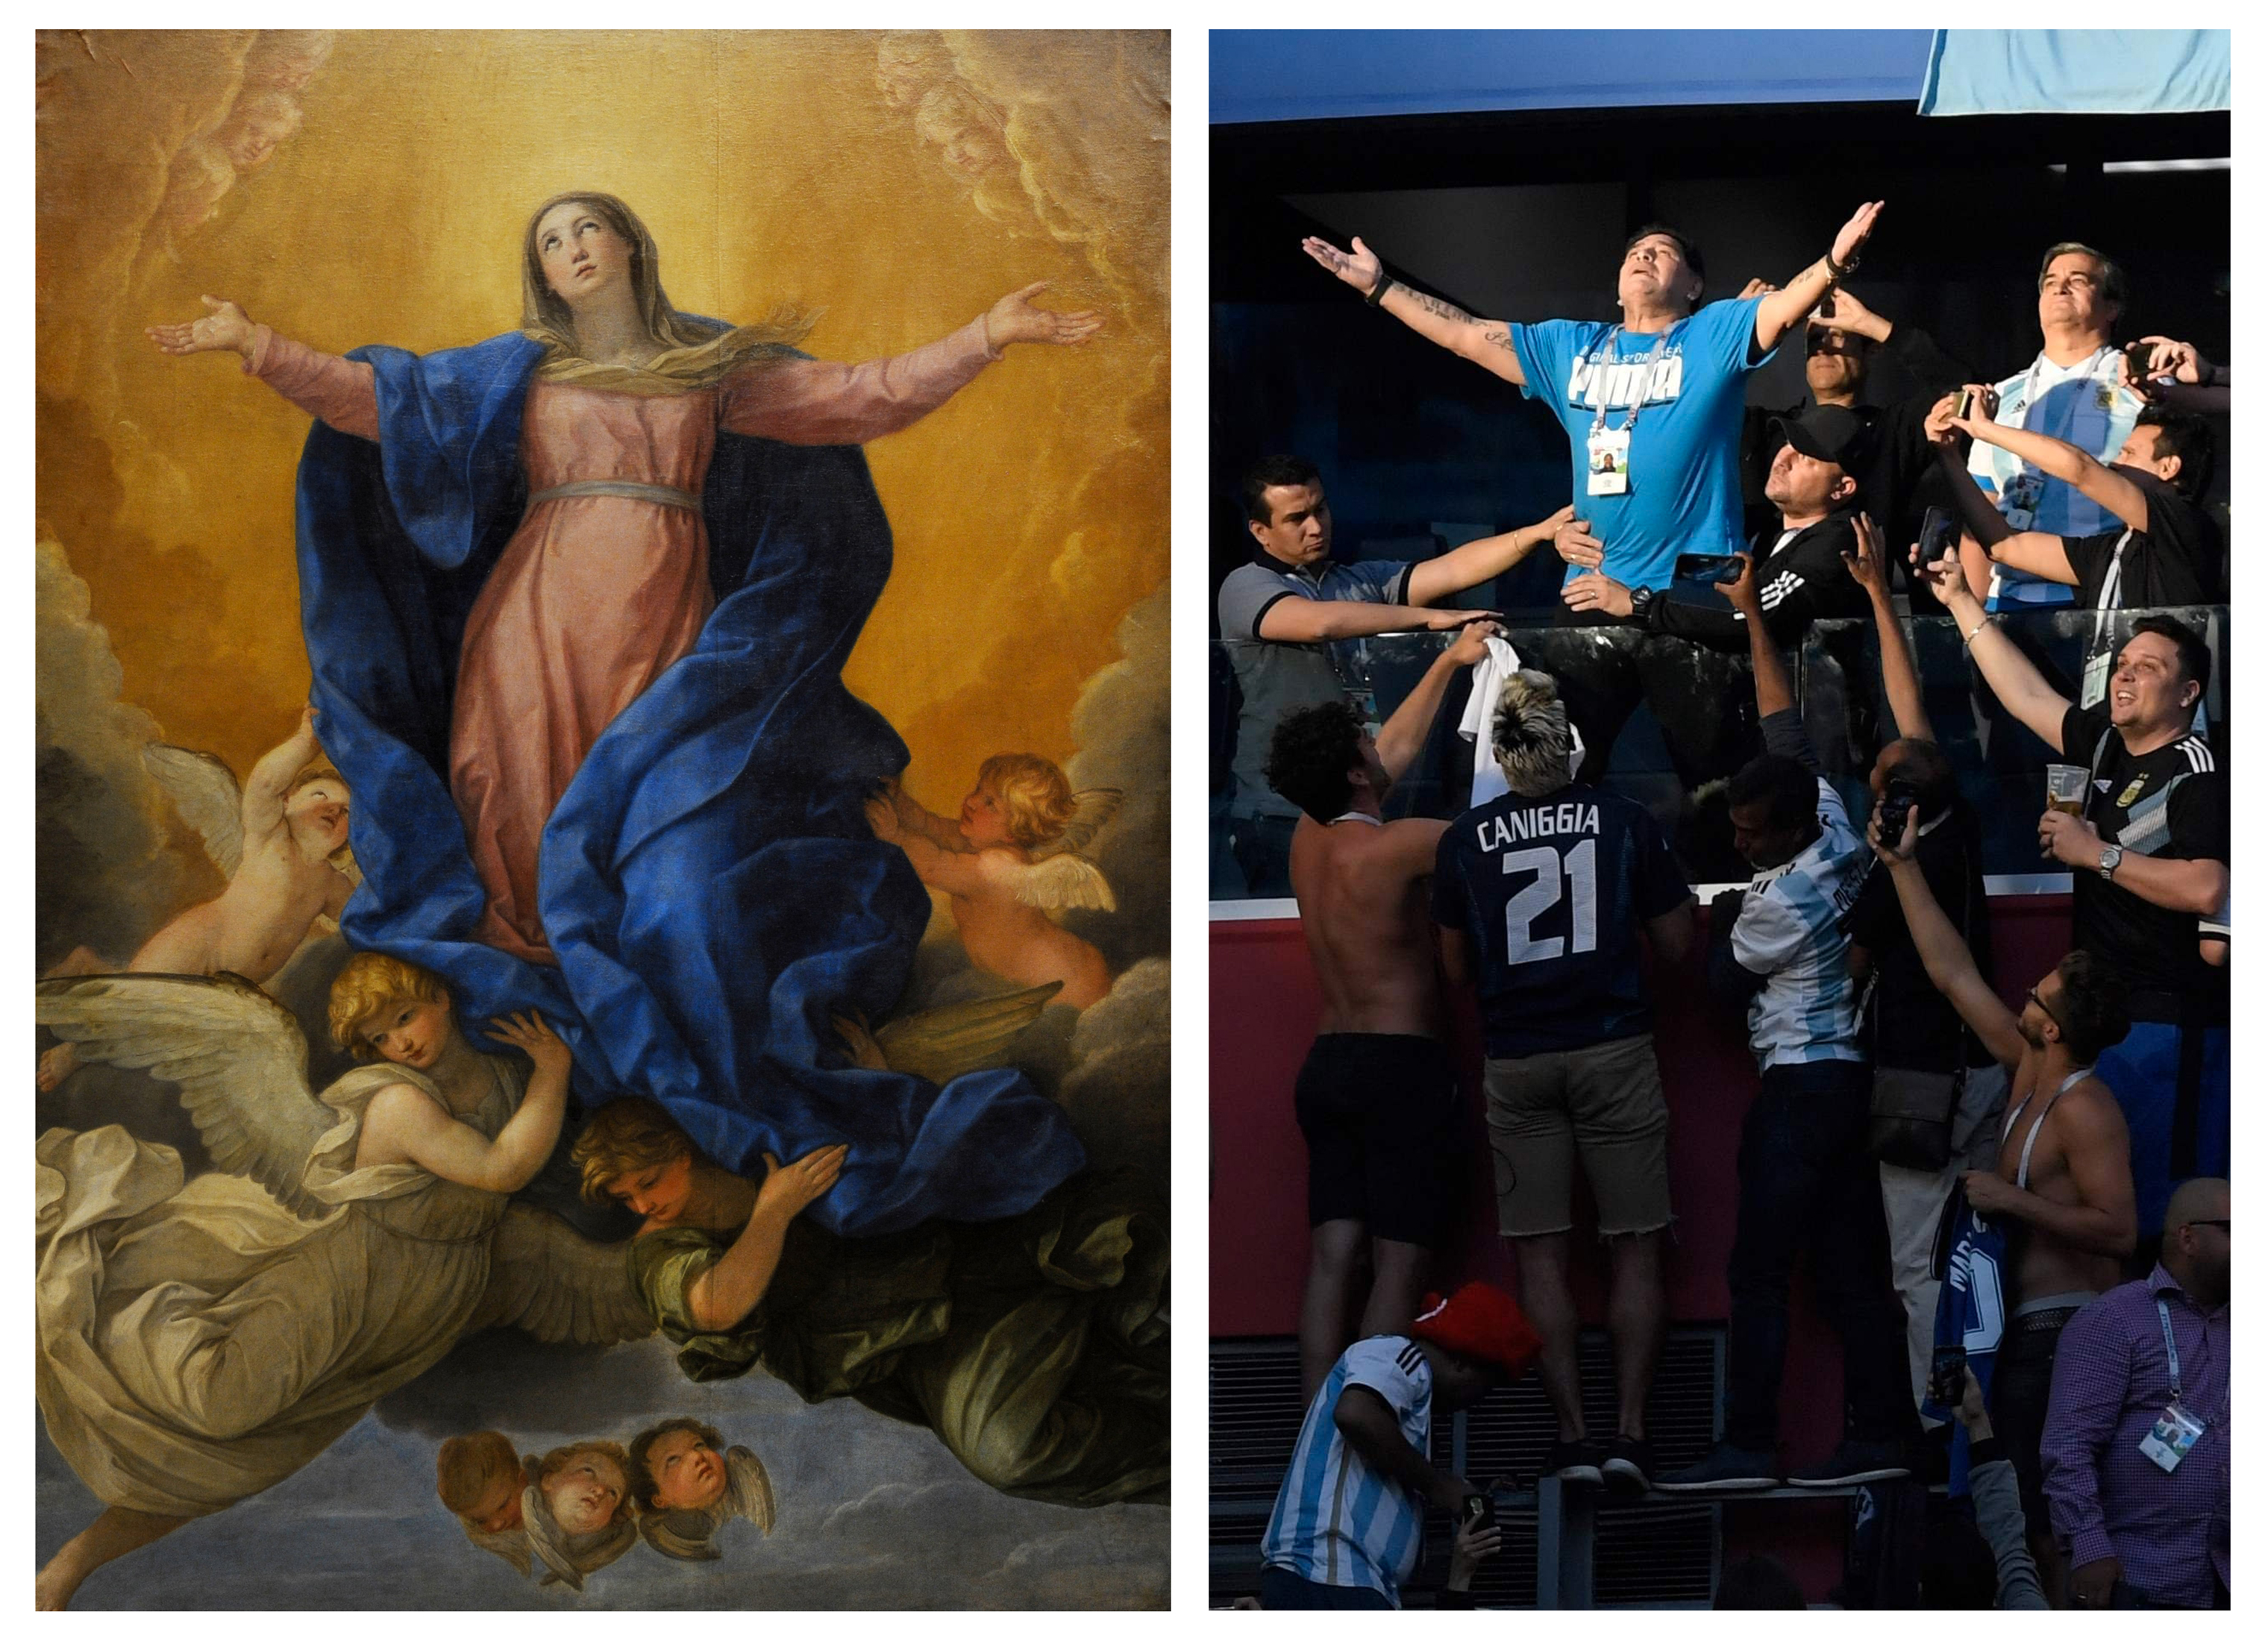 The Assumption of the Virgin Mary painting by Guido Reni ; Argentinian soccer star Diego Maradona